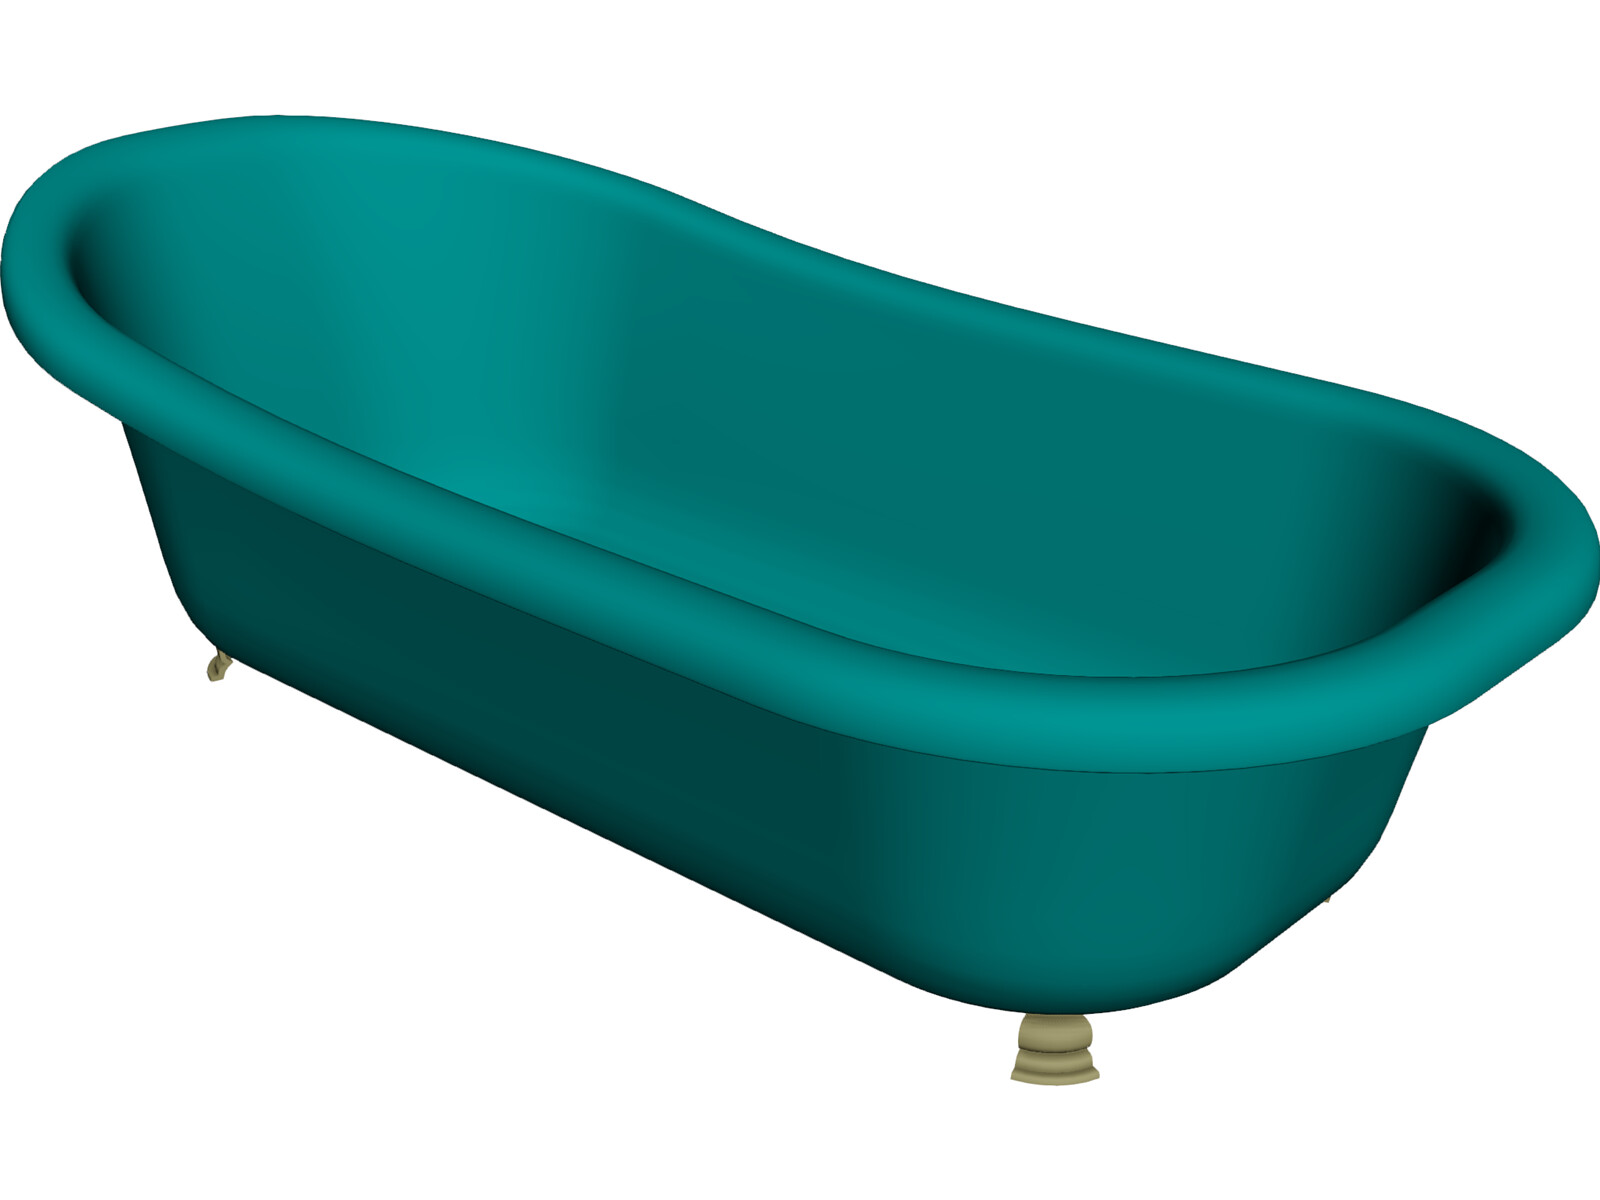 Bathtub Free Standing 3D Model